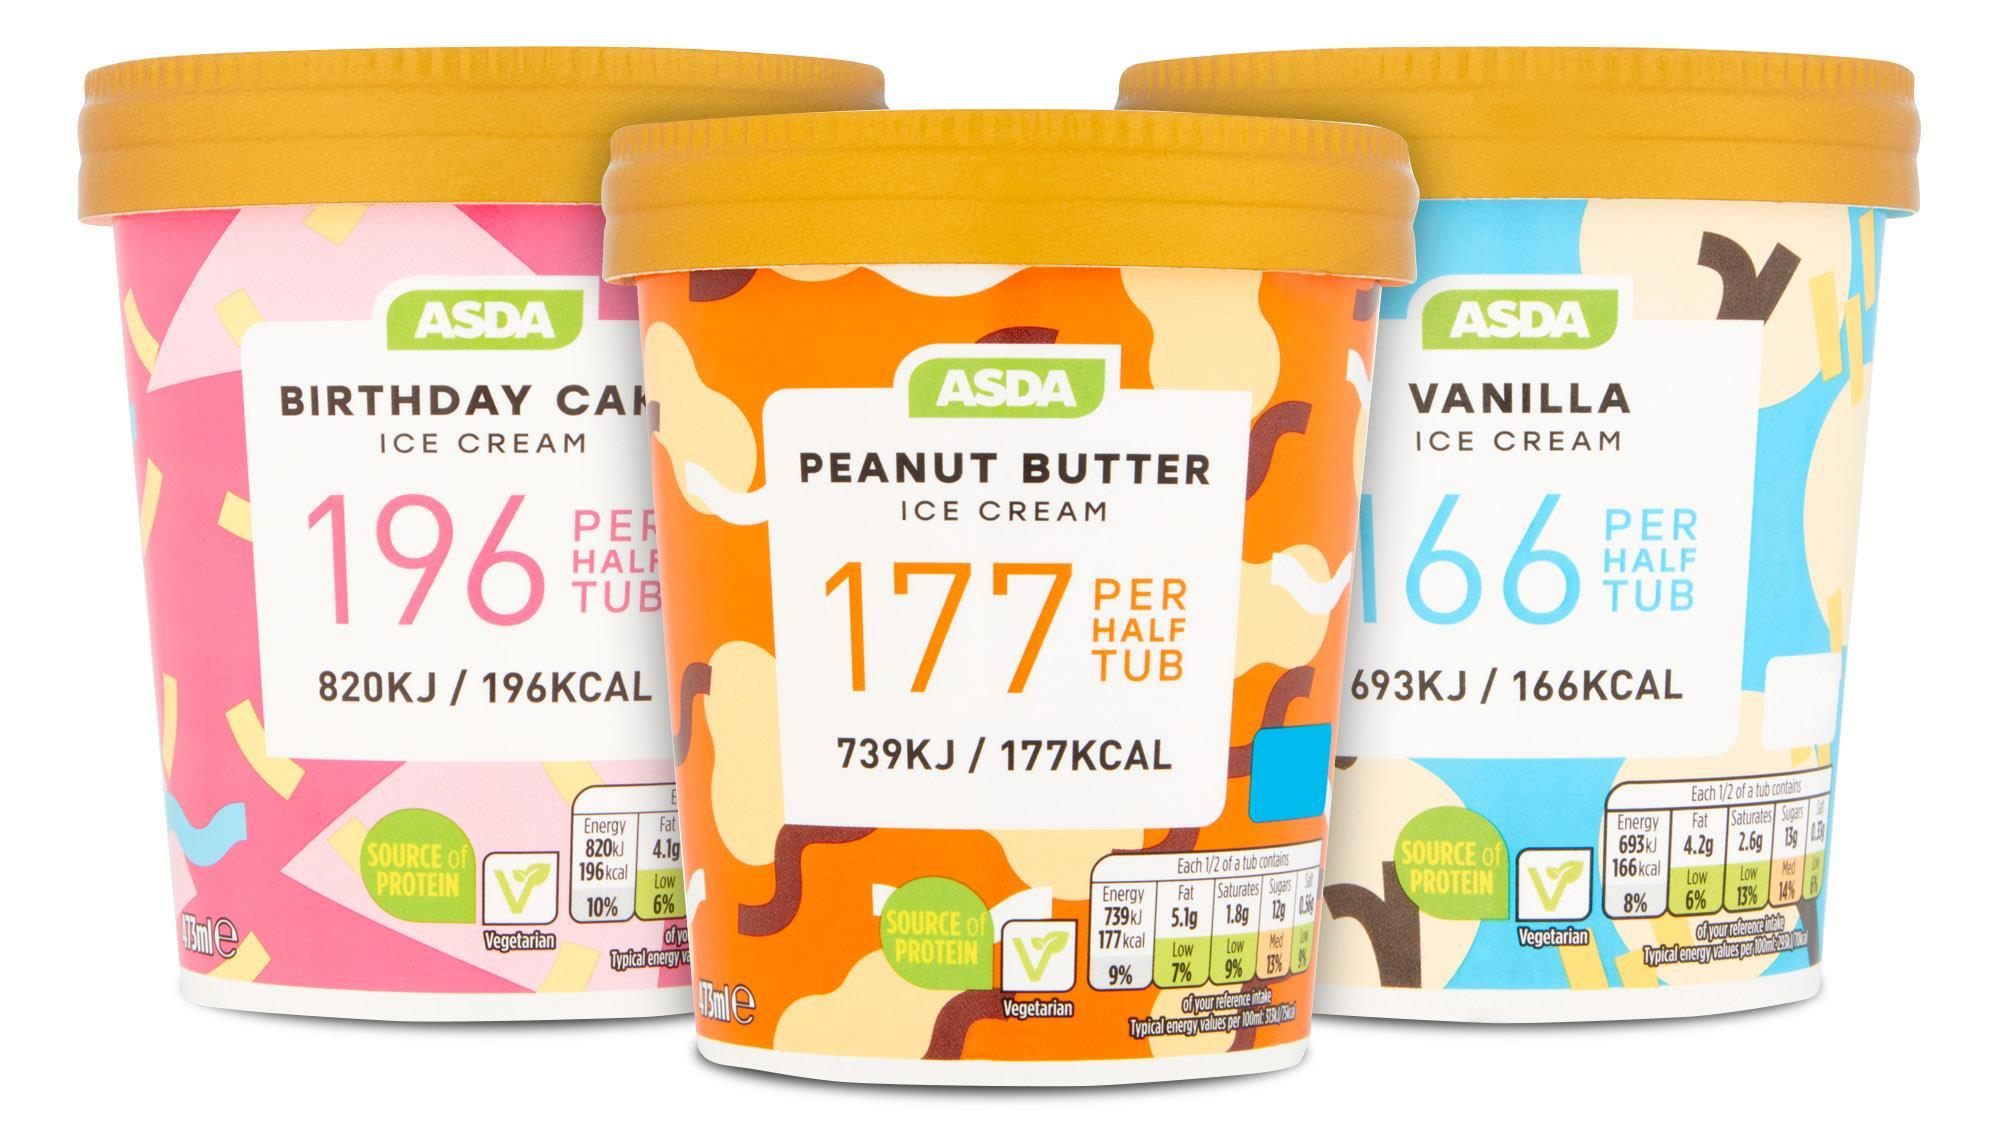 Aldi And Asda Take On Halo Top With Own Label Low Cal Ice Creams